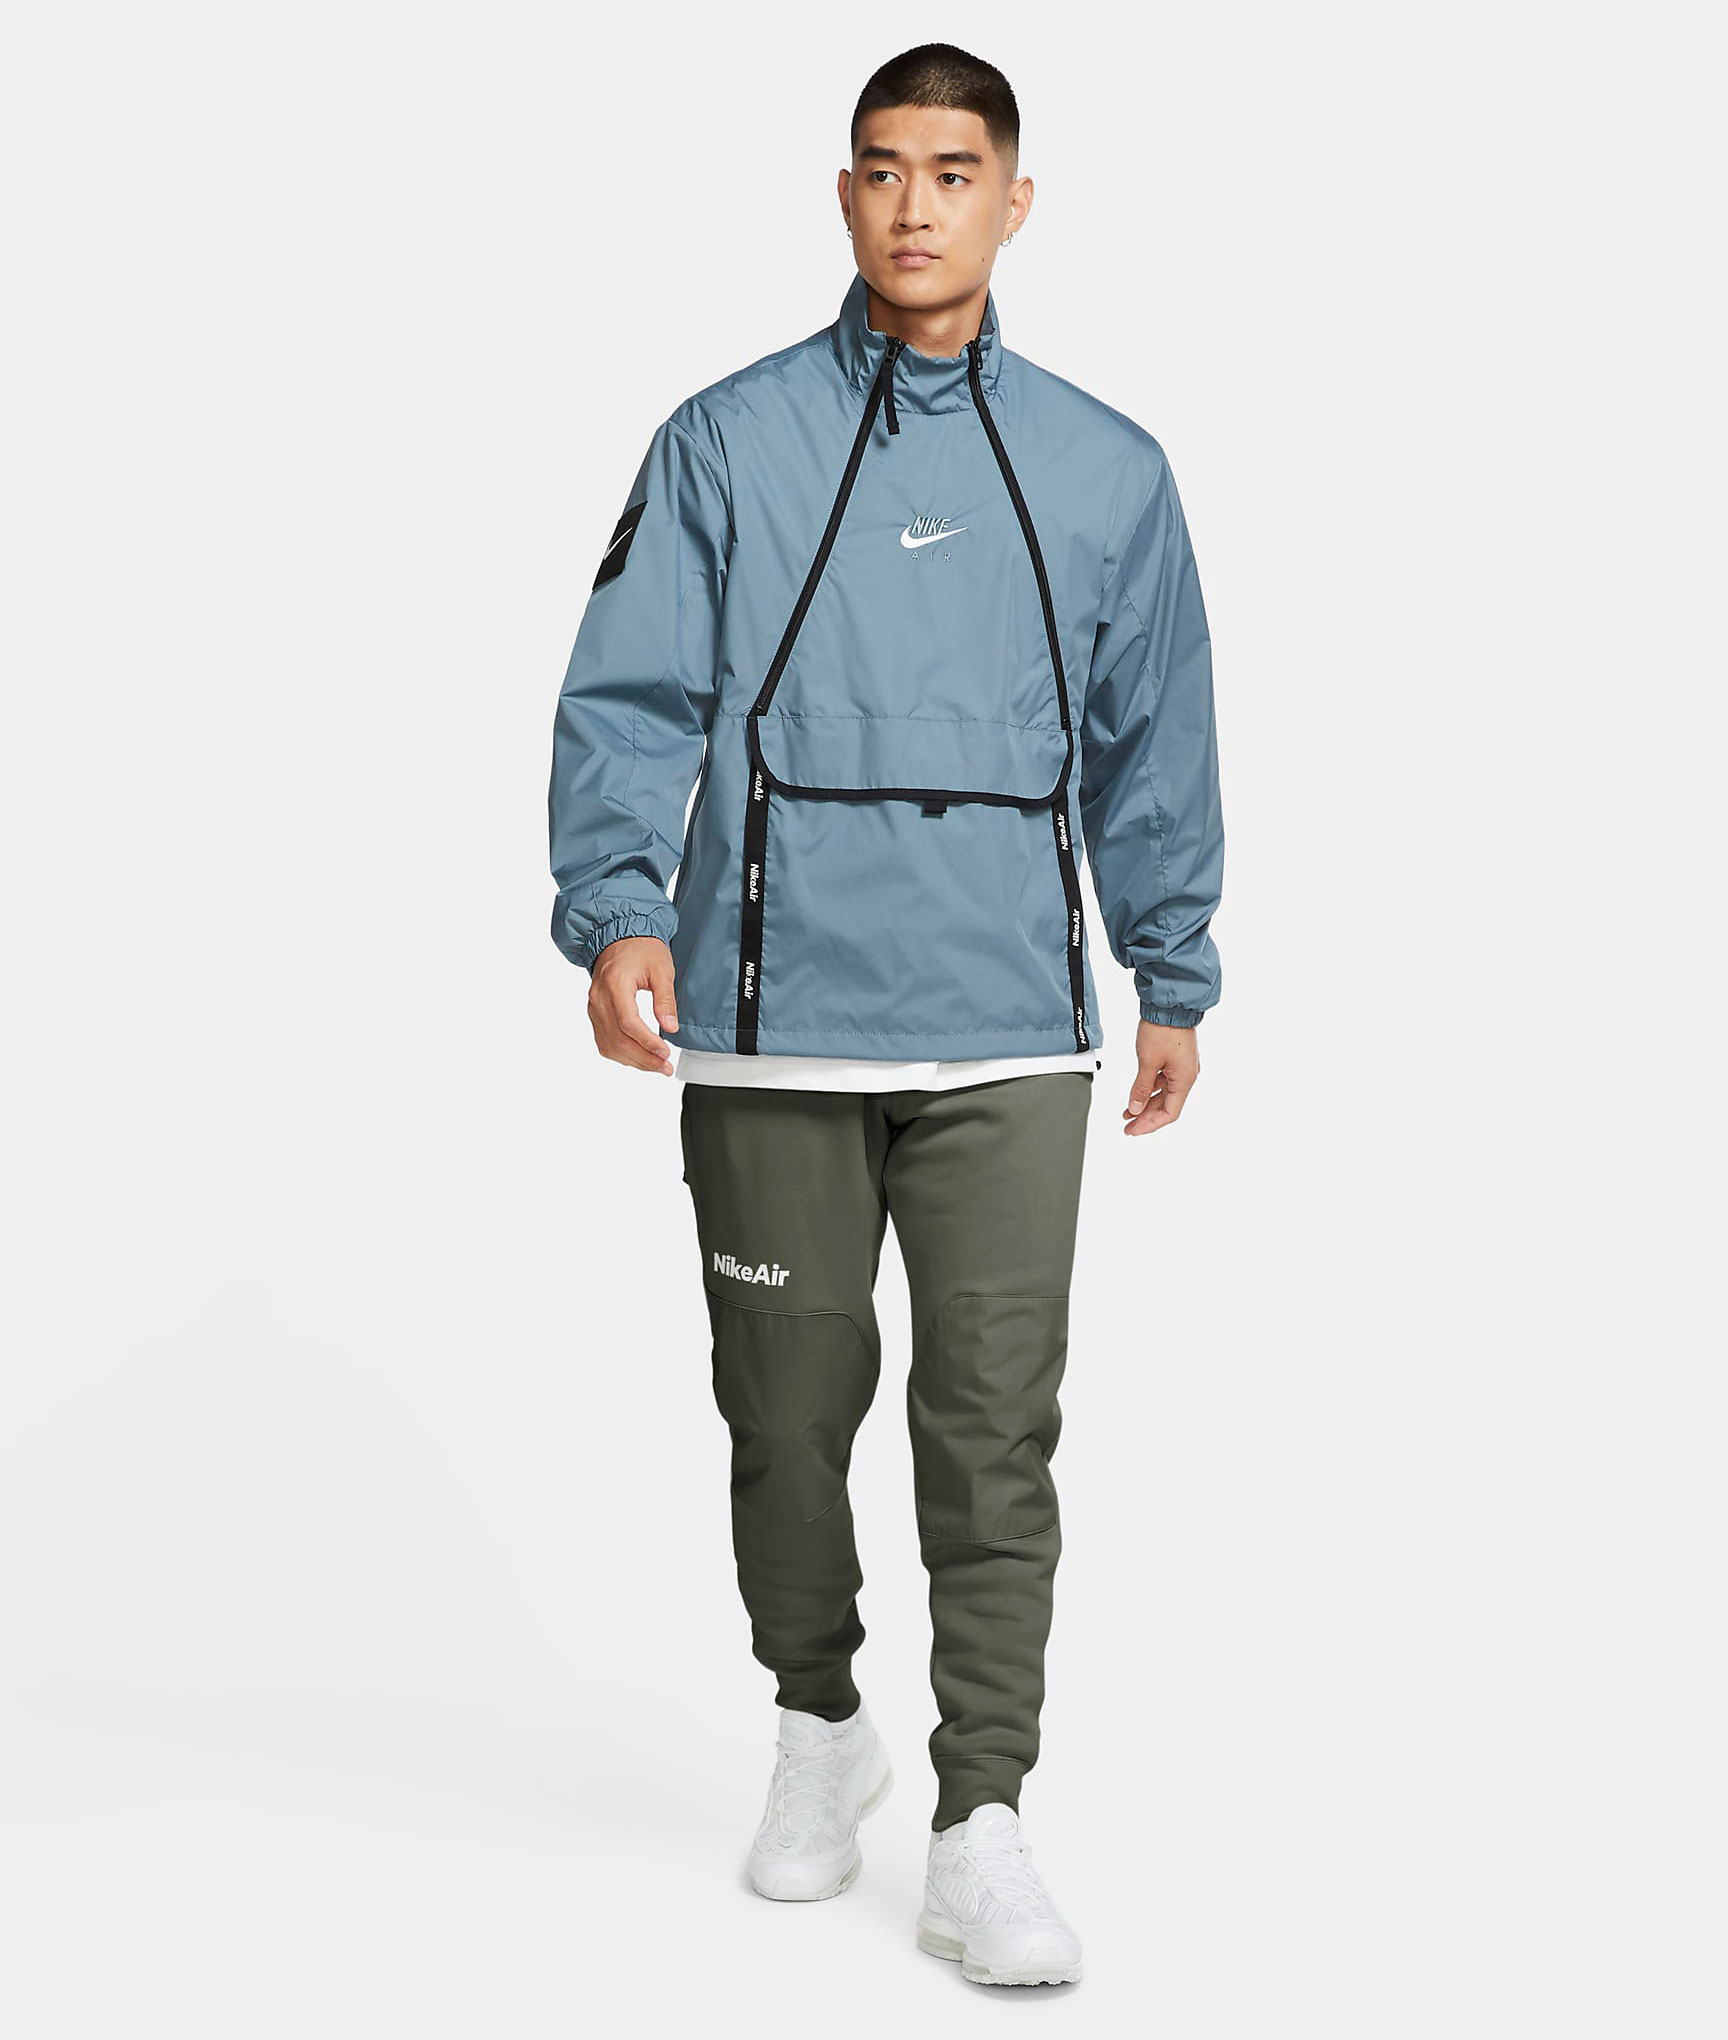 nike-air-jacket-pants-outfit